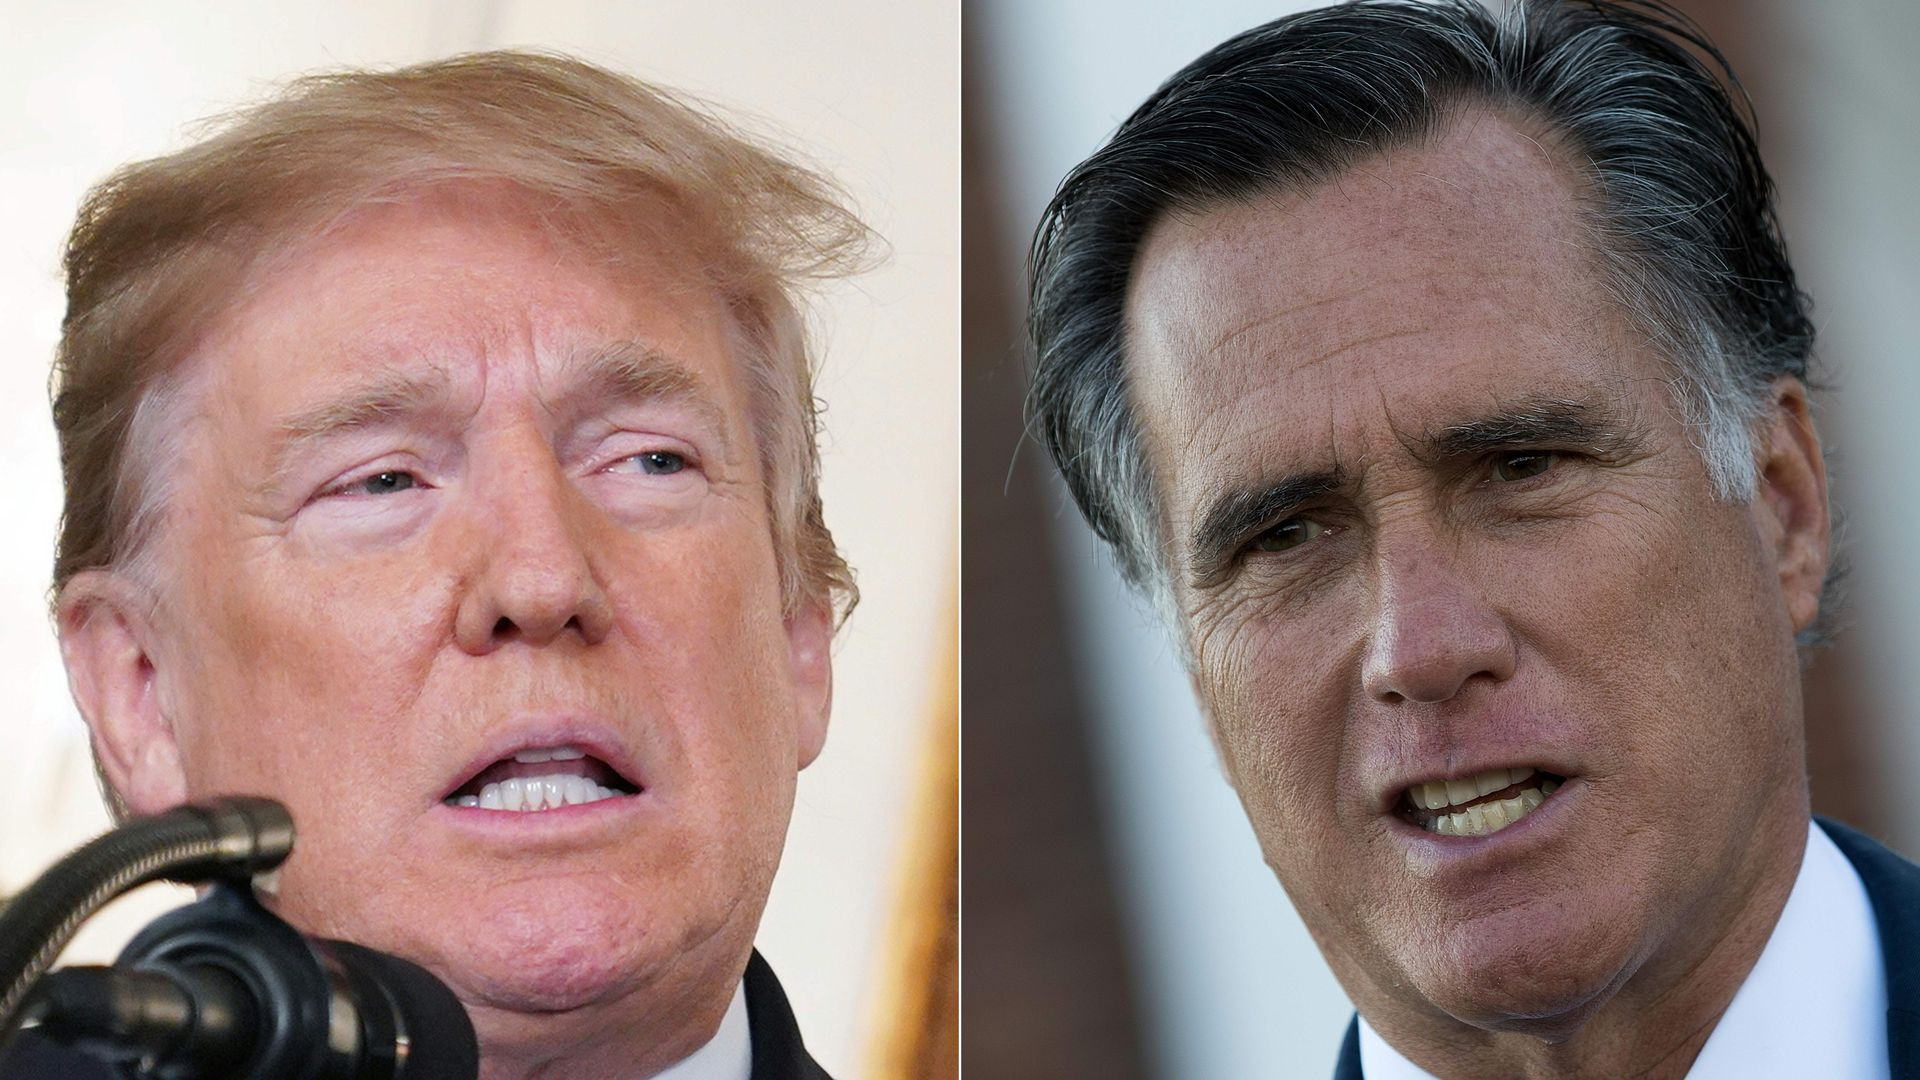 President Trump hit back at Mitt Romney for criticizing him over the Mueller report.